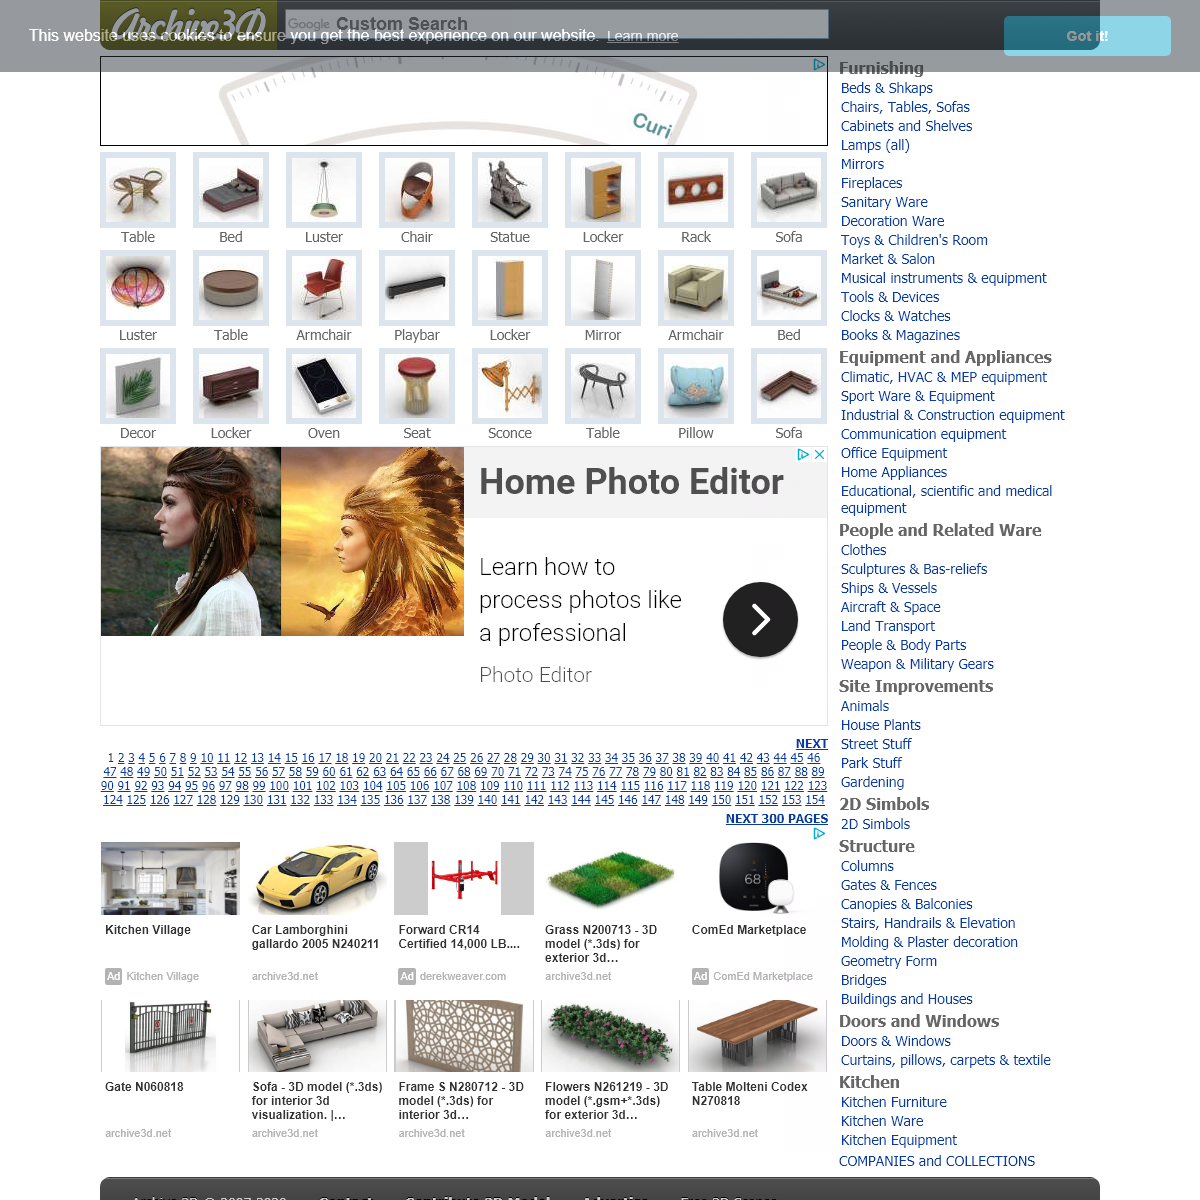 Free 3D Models and Objects Archive. Download- 3ds , obj , gsm , max models